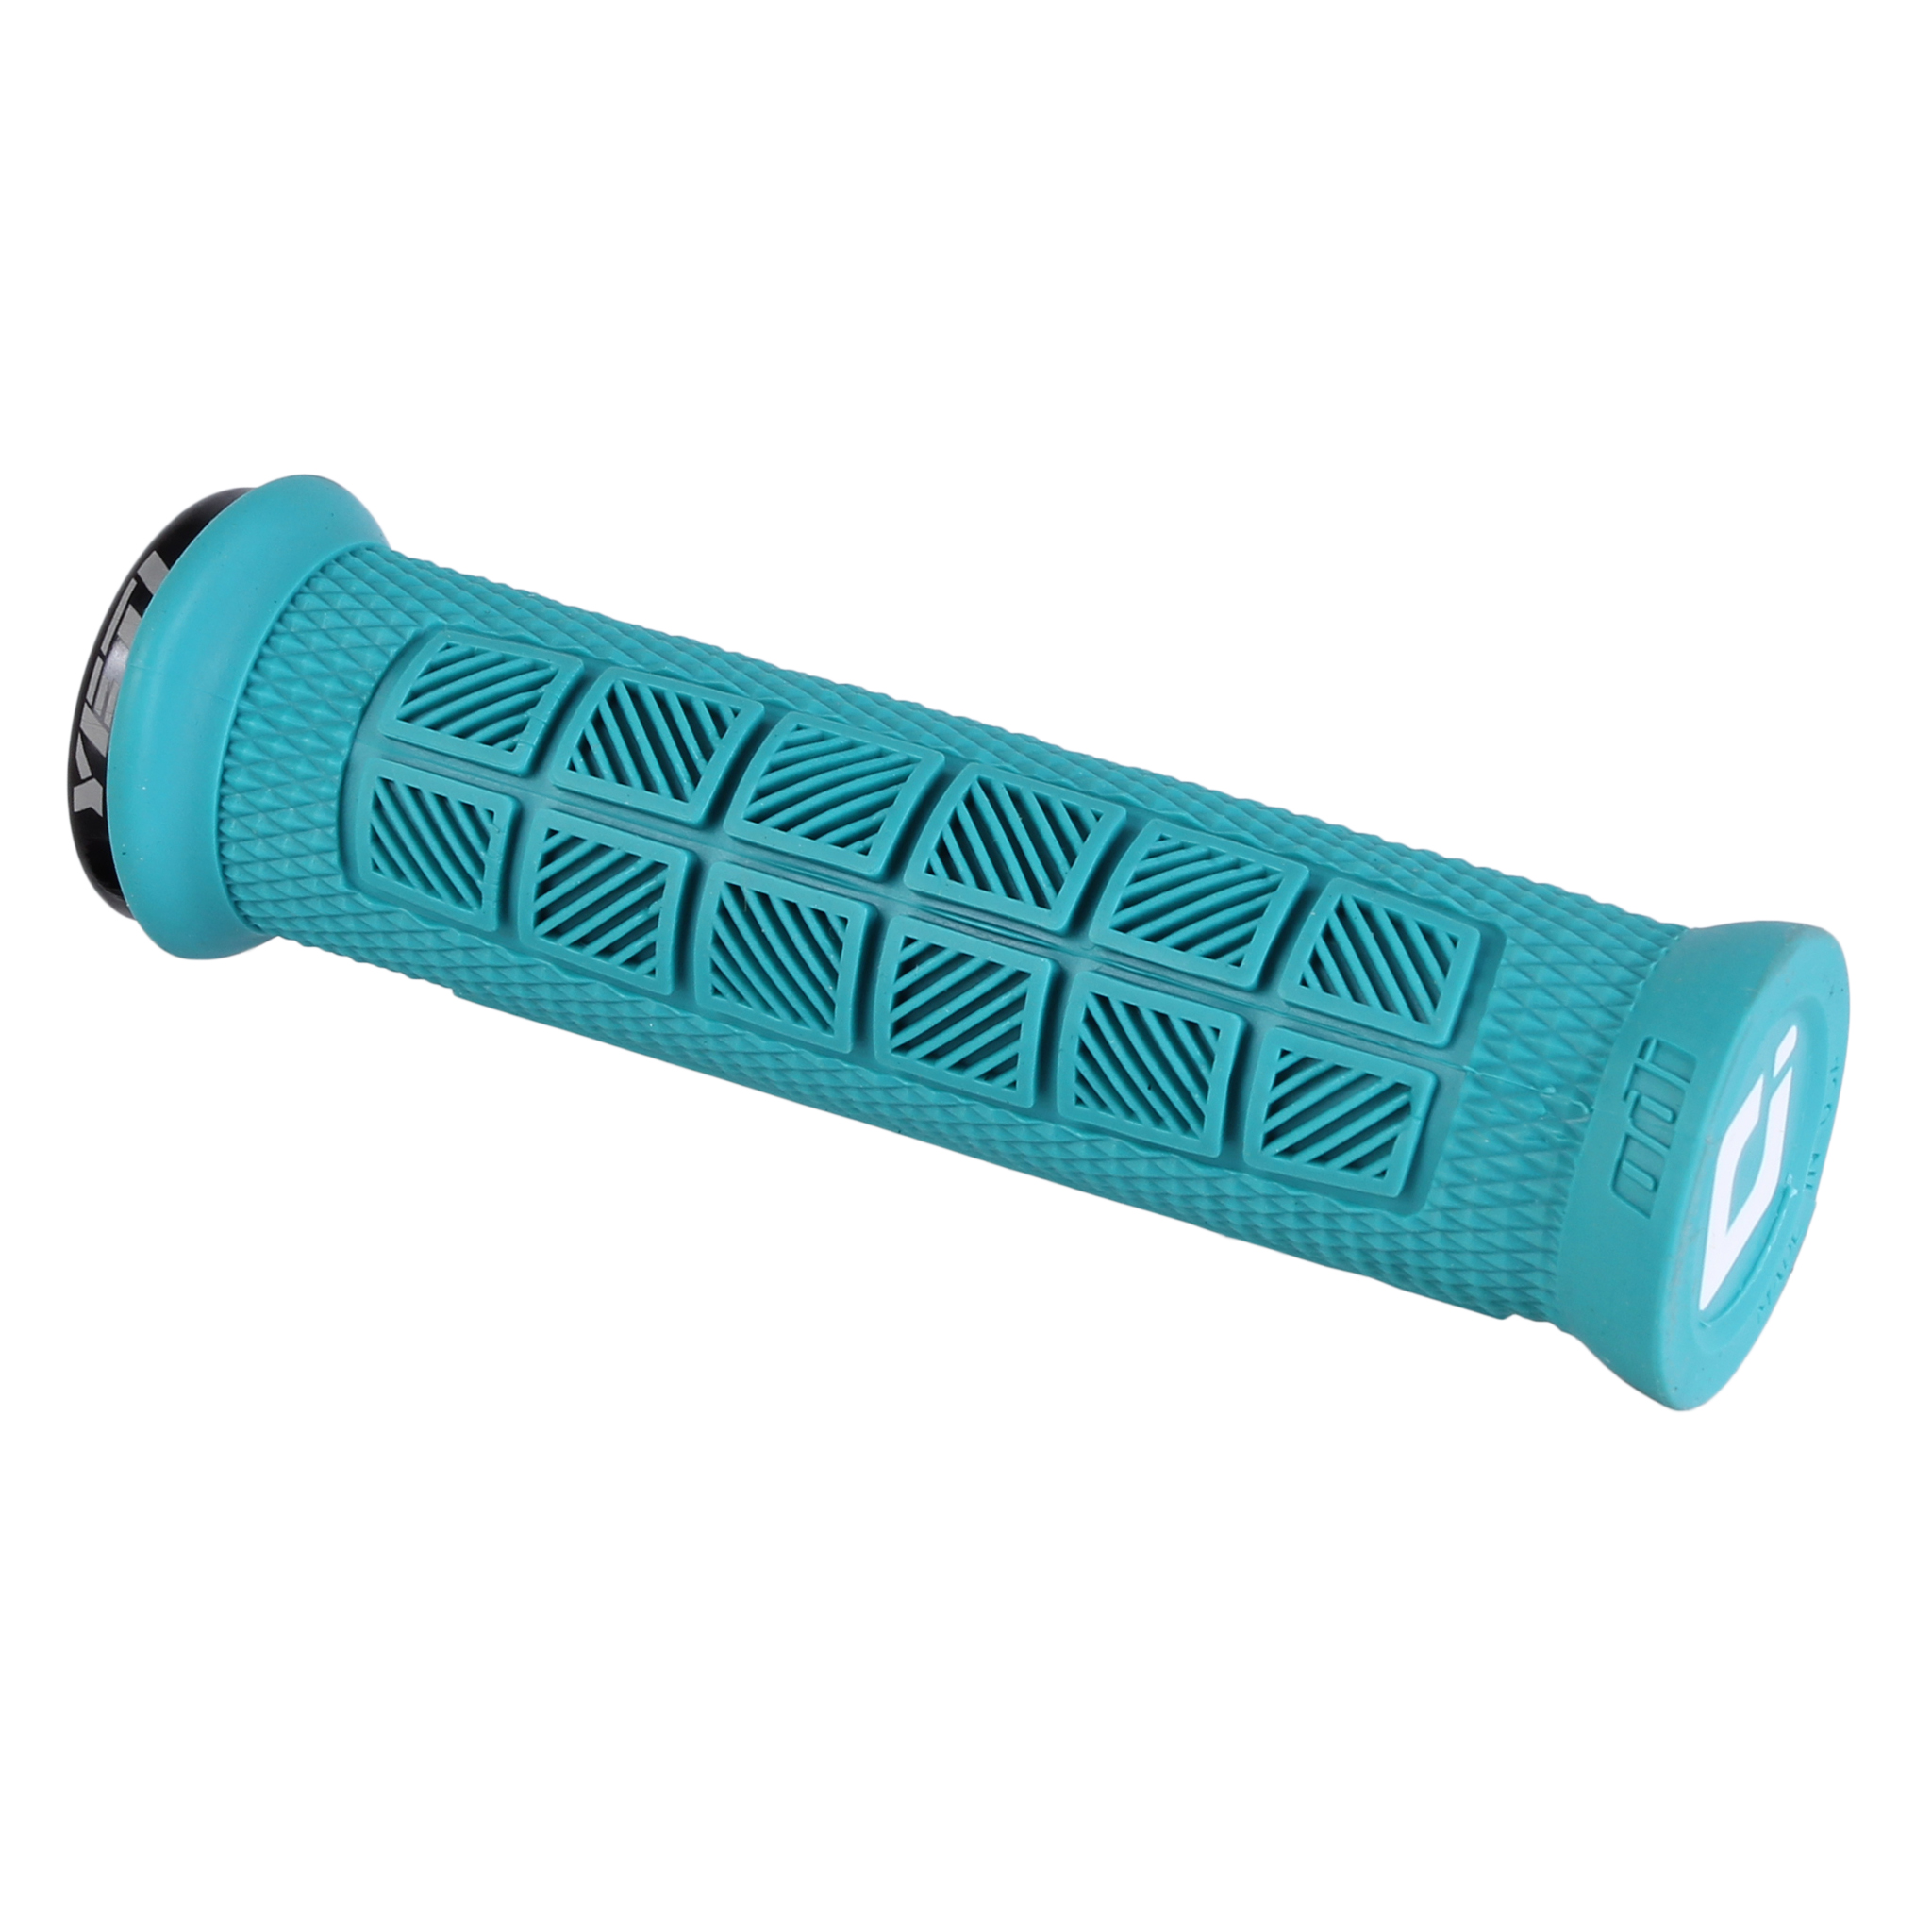 Turquoise ODI Lock-On MTB Bonus Pack Elite Pro